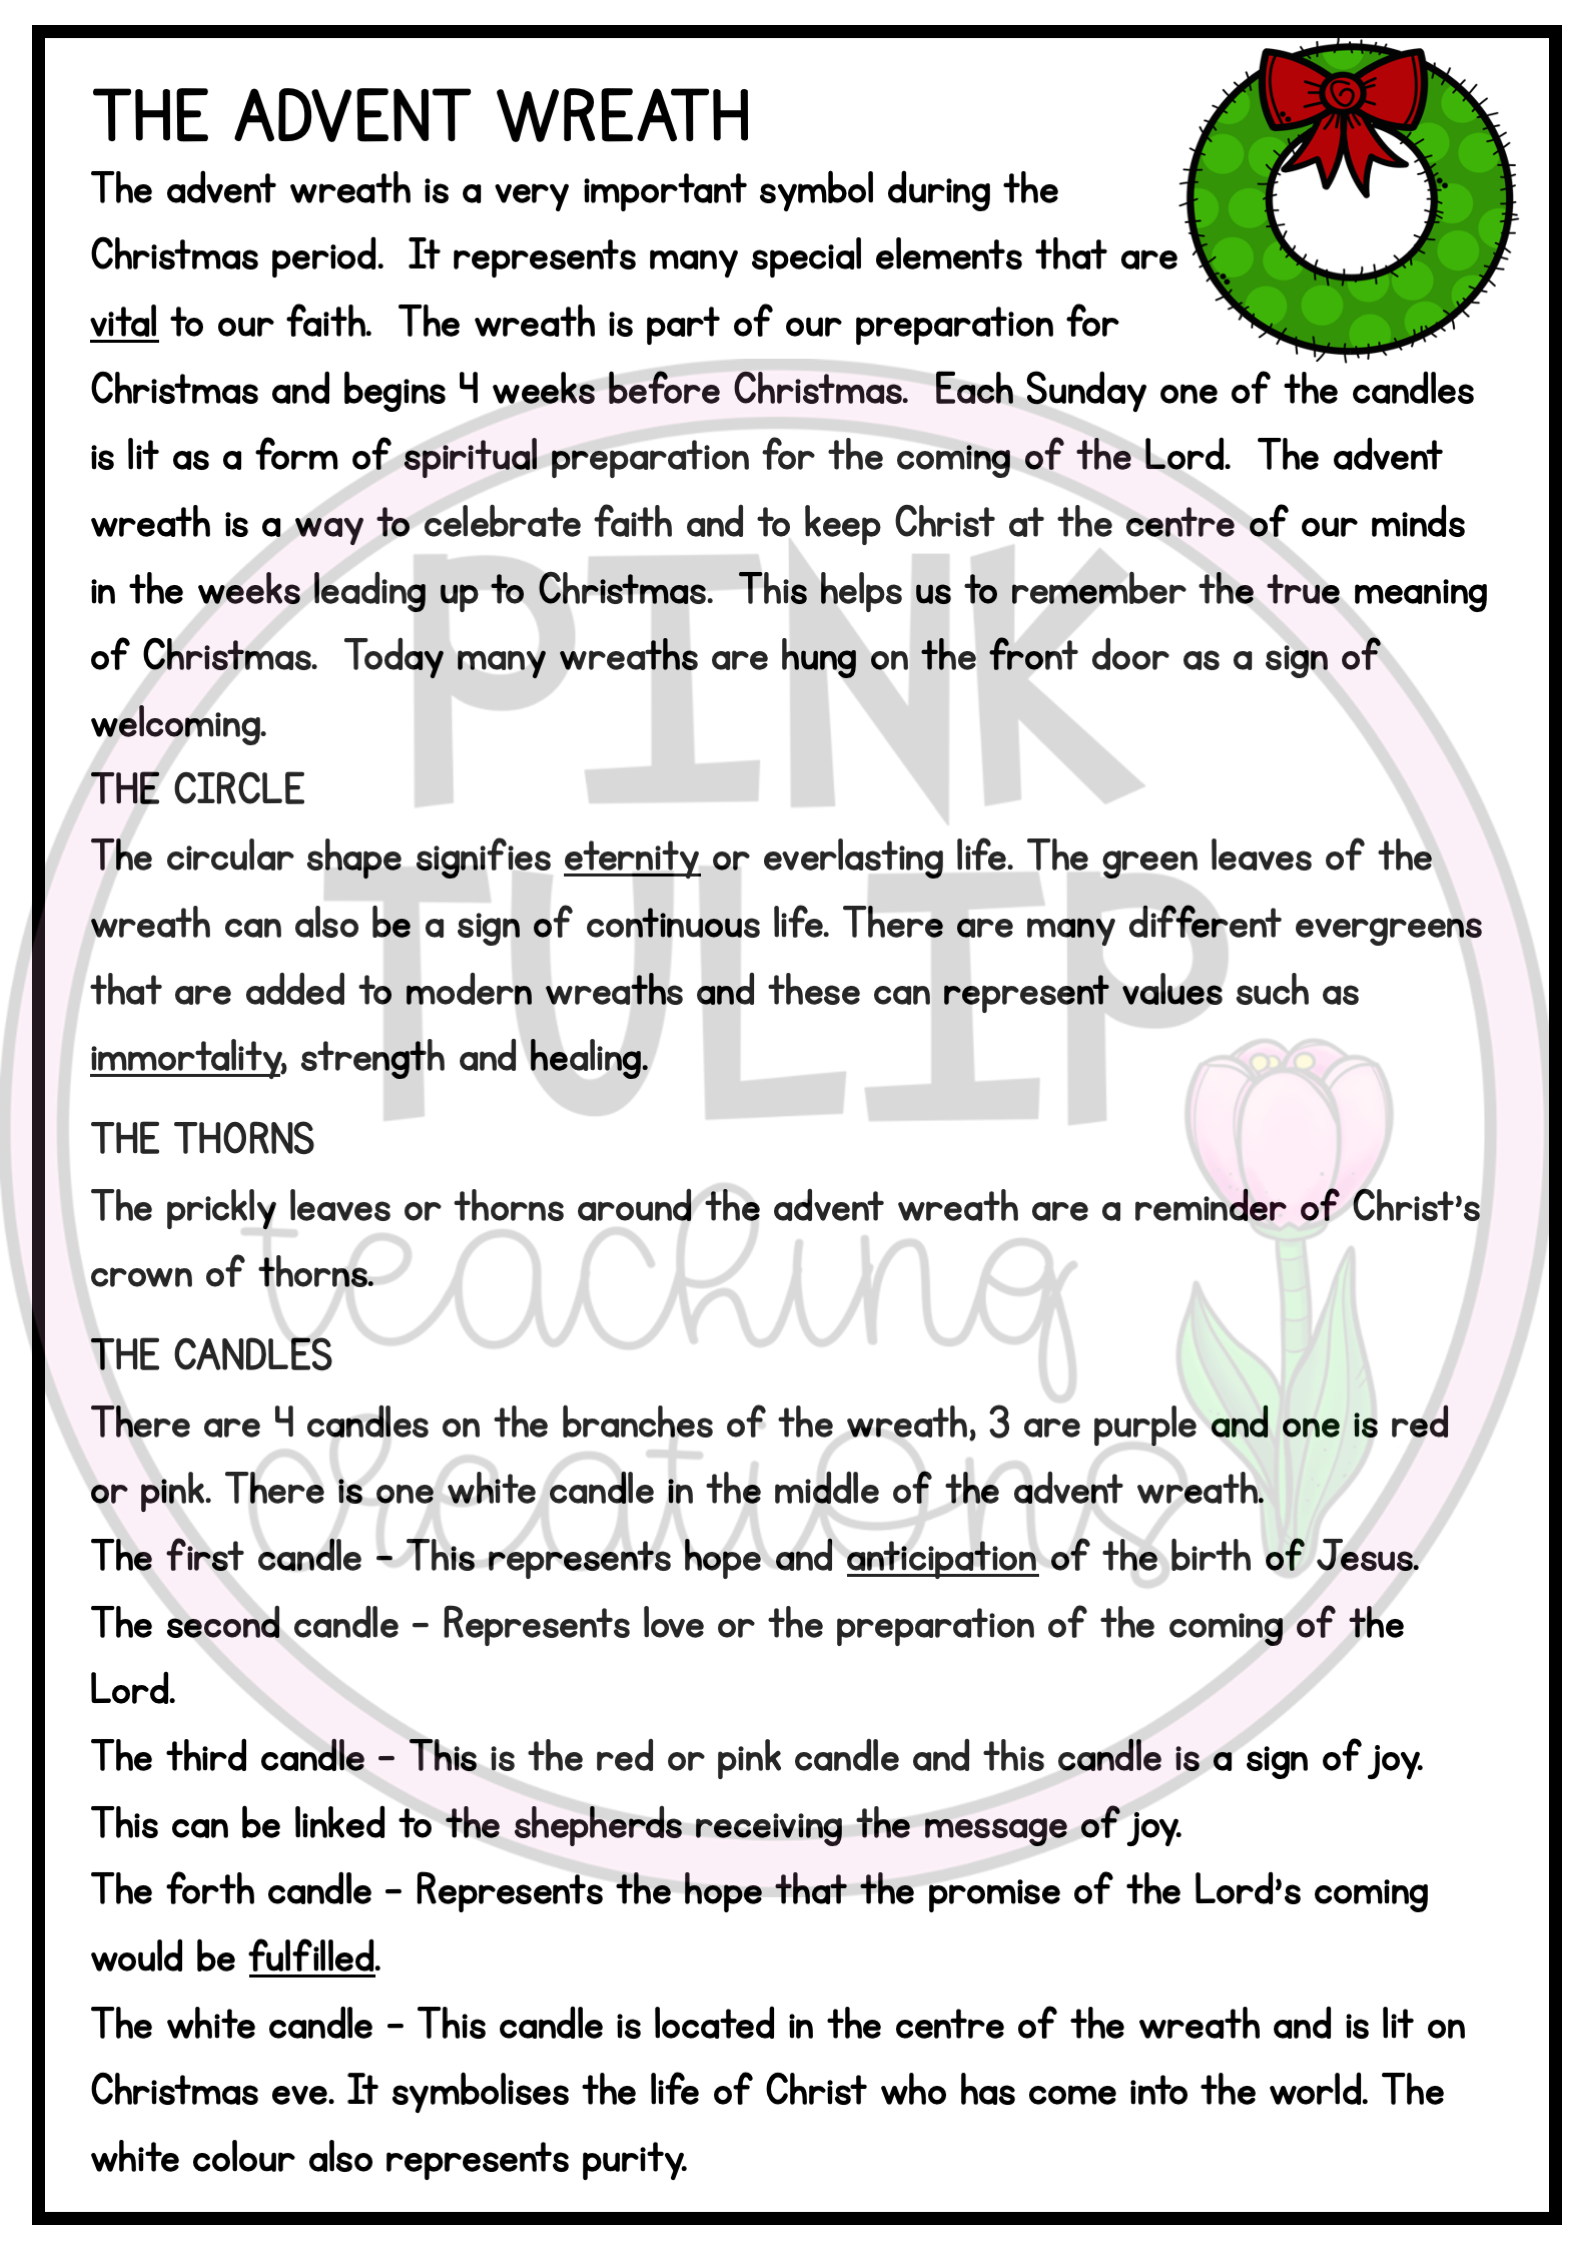 Advent Wreath Christmas Comprehension - Reading Strategy Worksheet    Reading strategies [ 2249 x 1589 Pixel ]